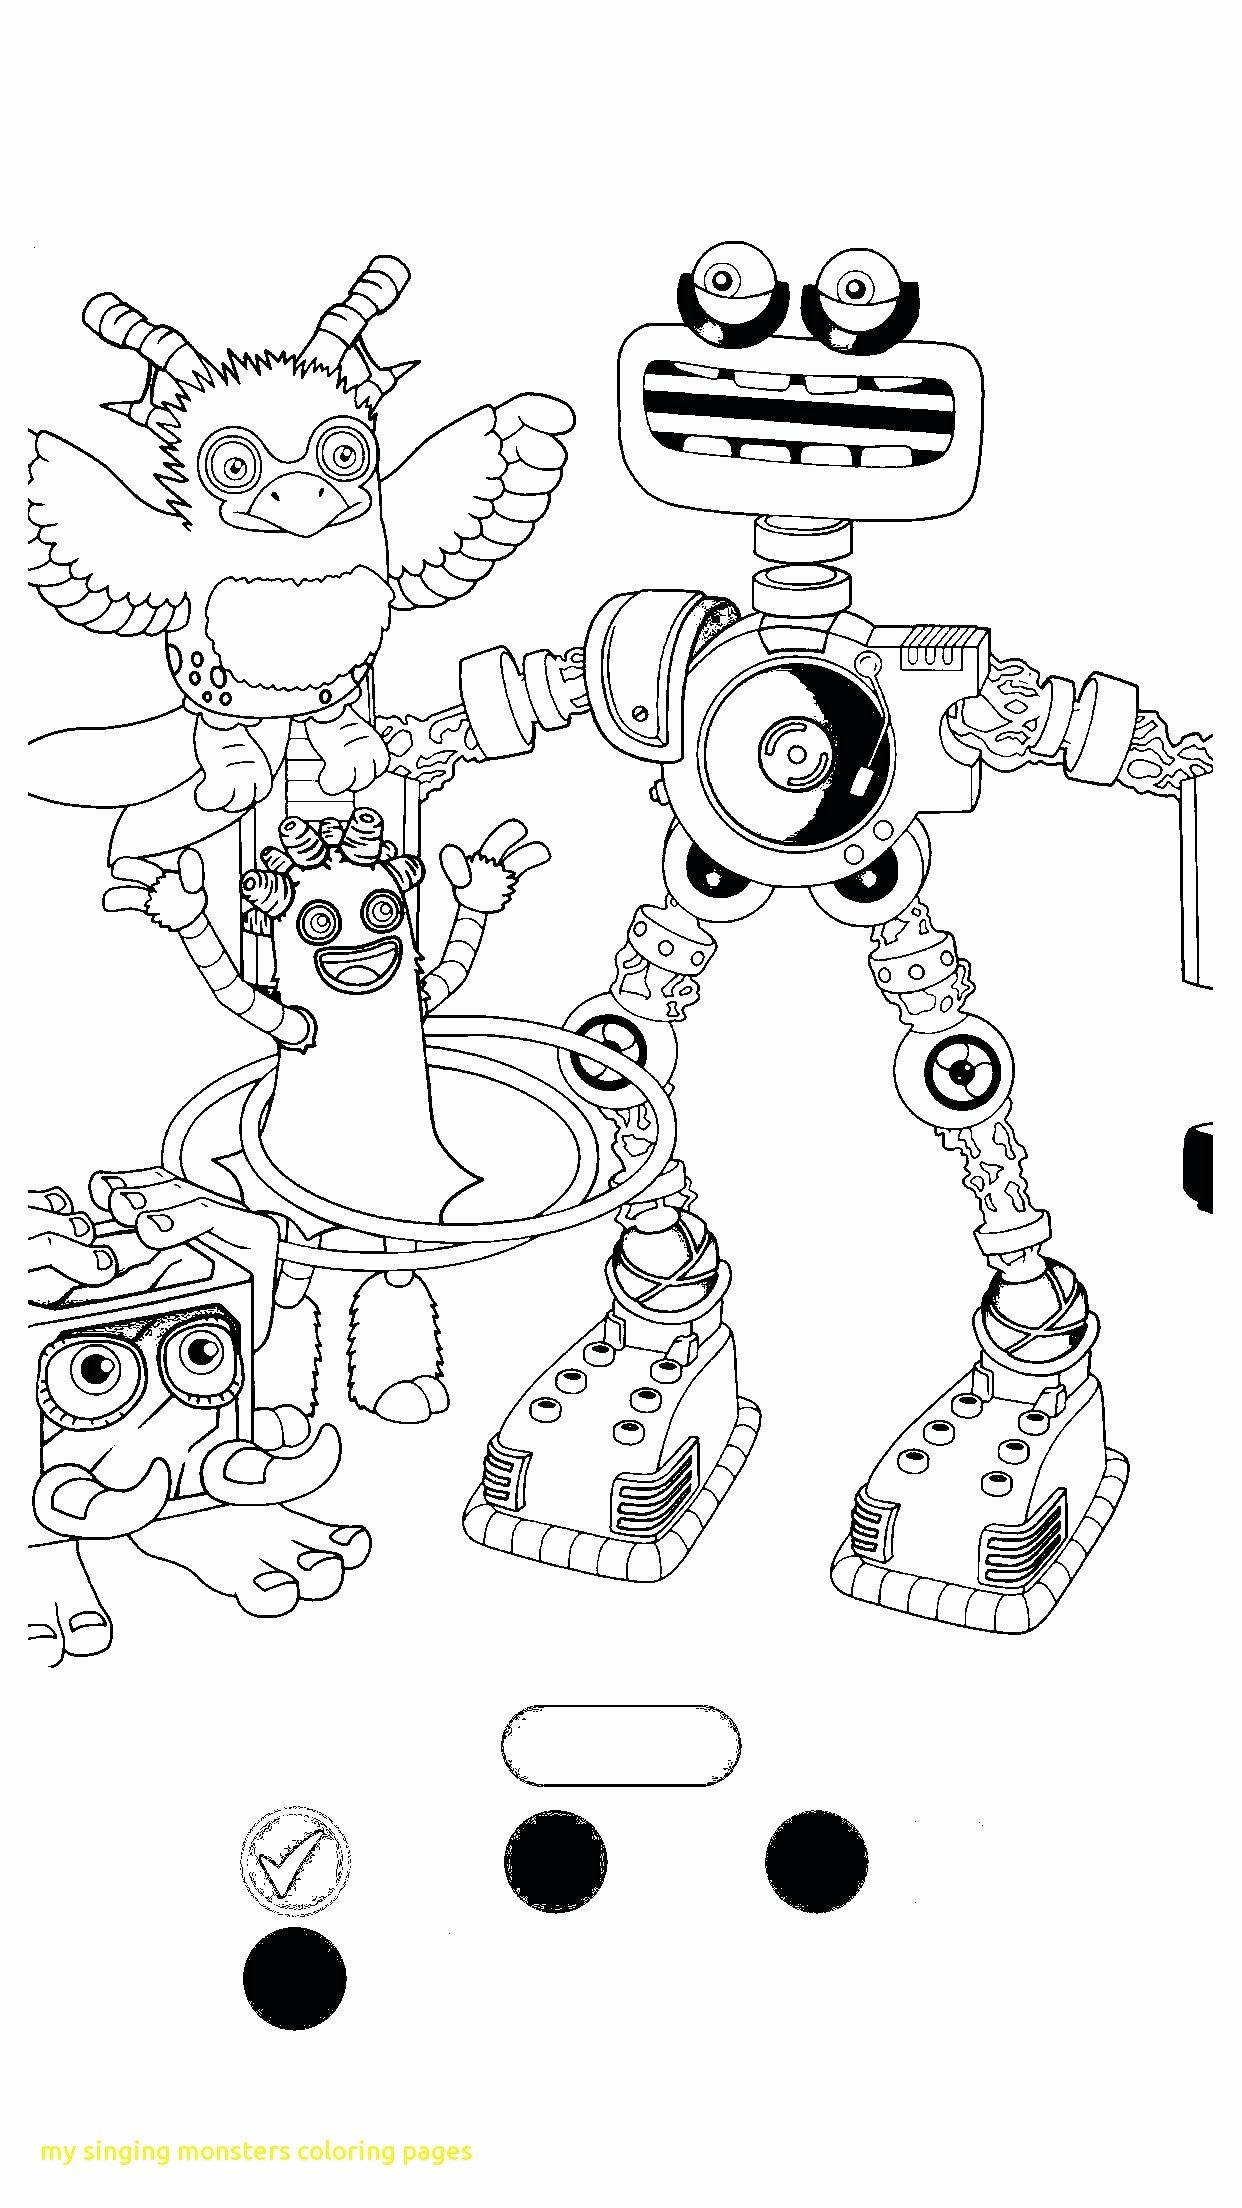 My Singing Monsters Coloring Book Lovely My Singing Monsters Coloring Pages Sketch Coloring Page In 2020 Monster Coloring Pages Singing Monsters My Singing Monsters